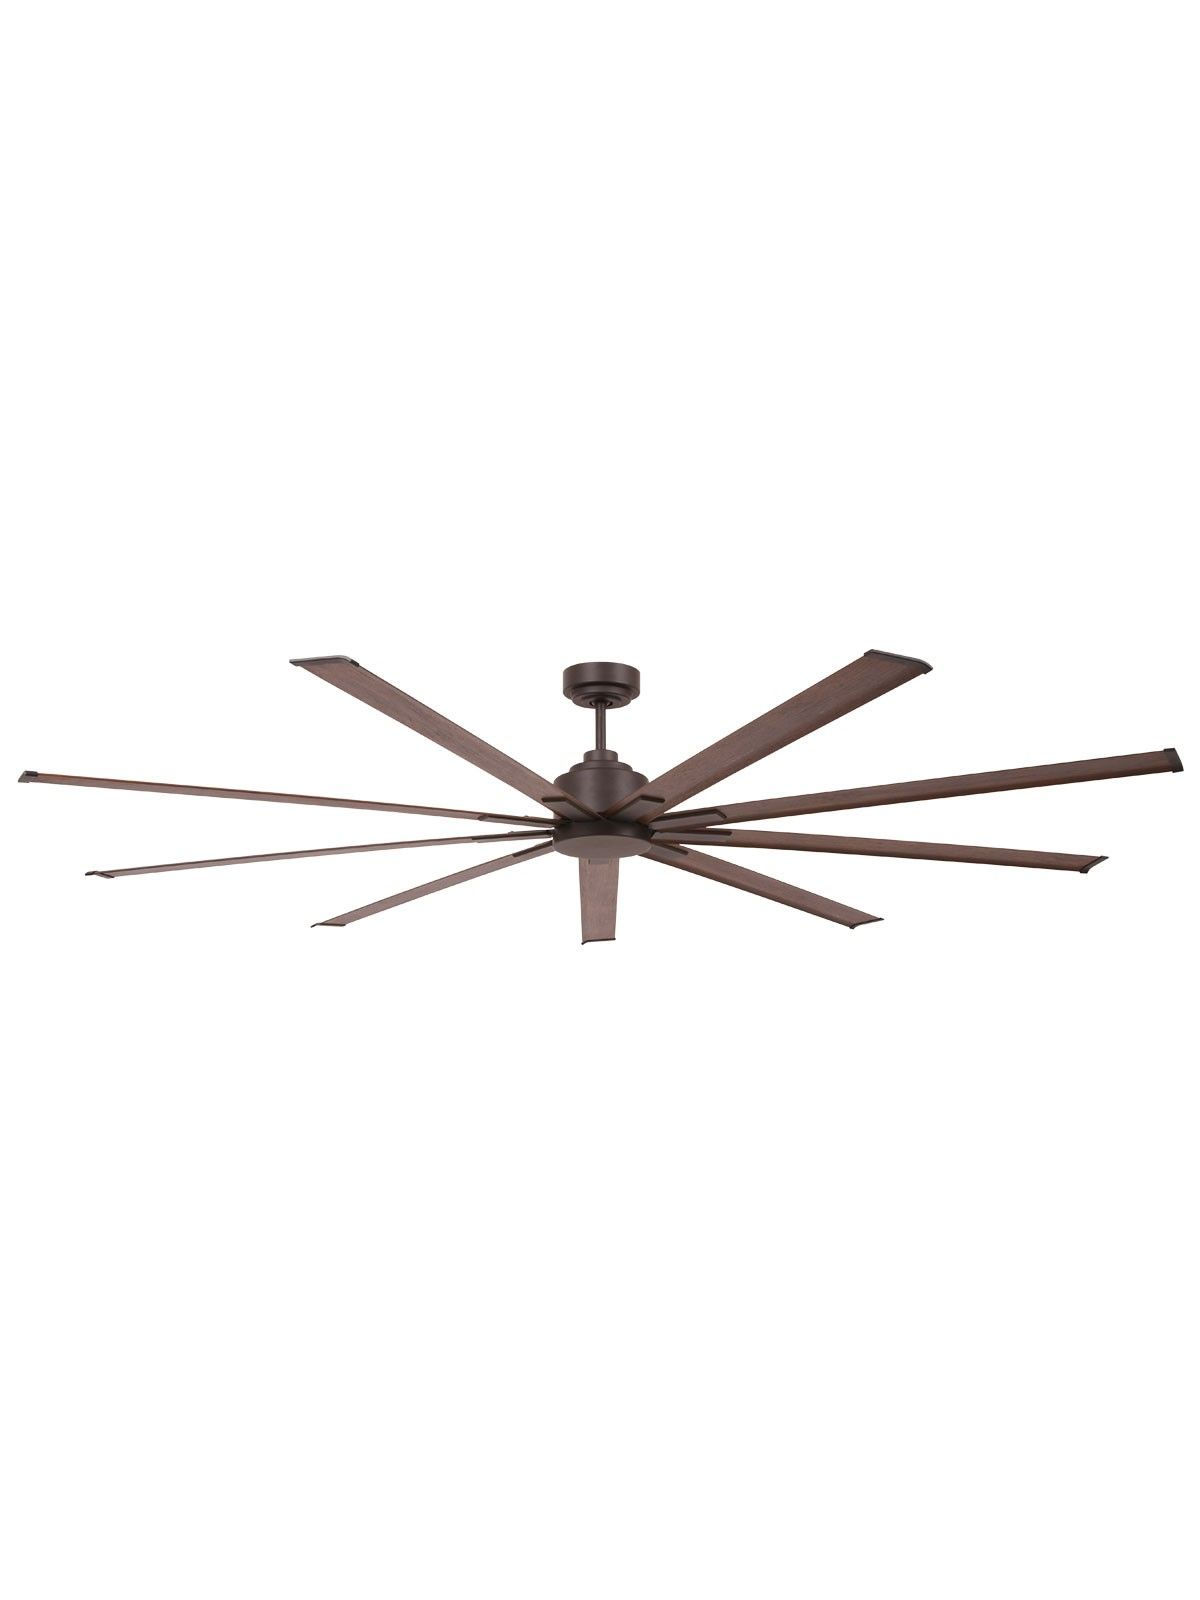 Airfusion Resort 203cm Dc Fan In Oil Rubbed Bronze Oil Rubbed Bronze Bronze Ceiling Fan Bronze